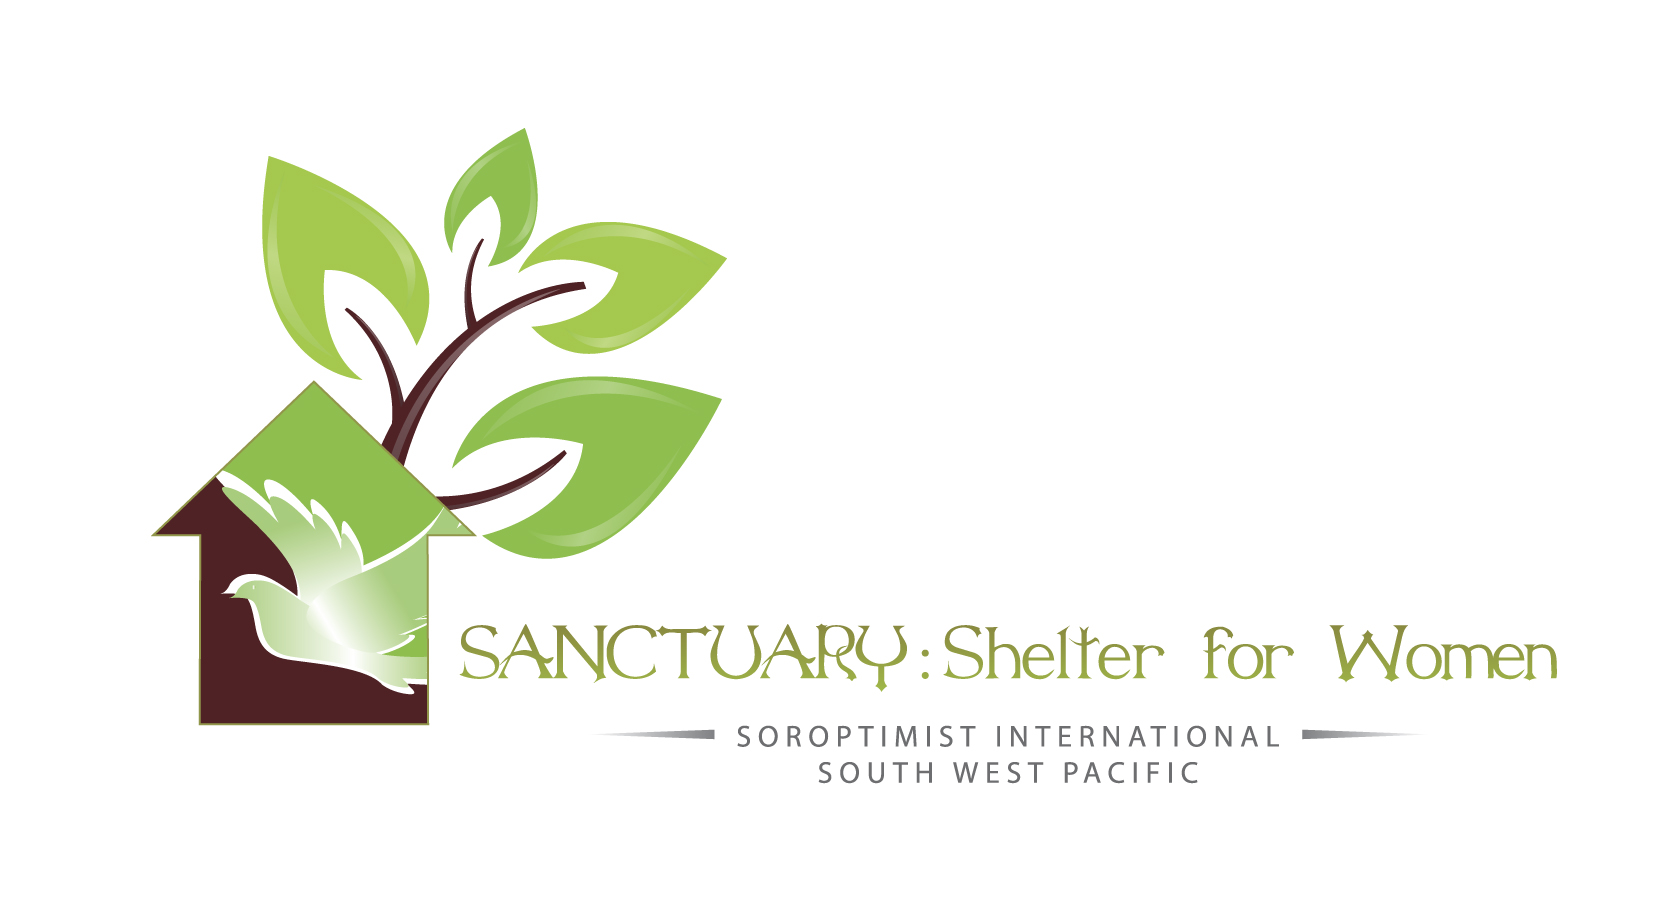 sanctuary shelter for women logo